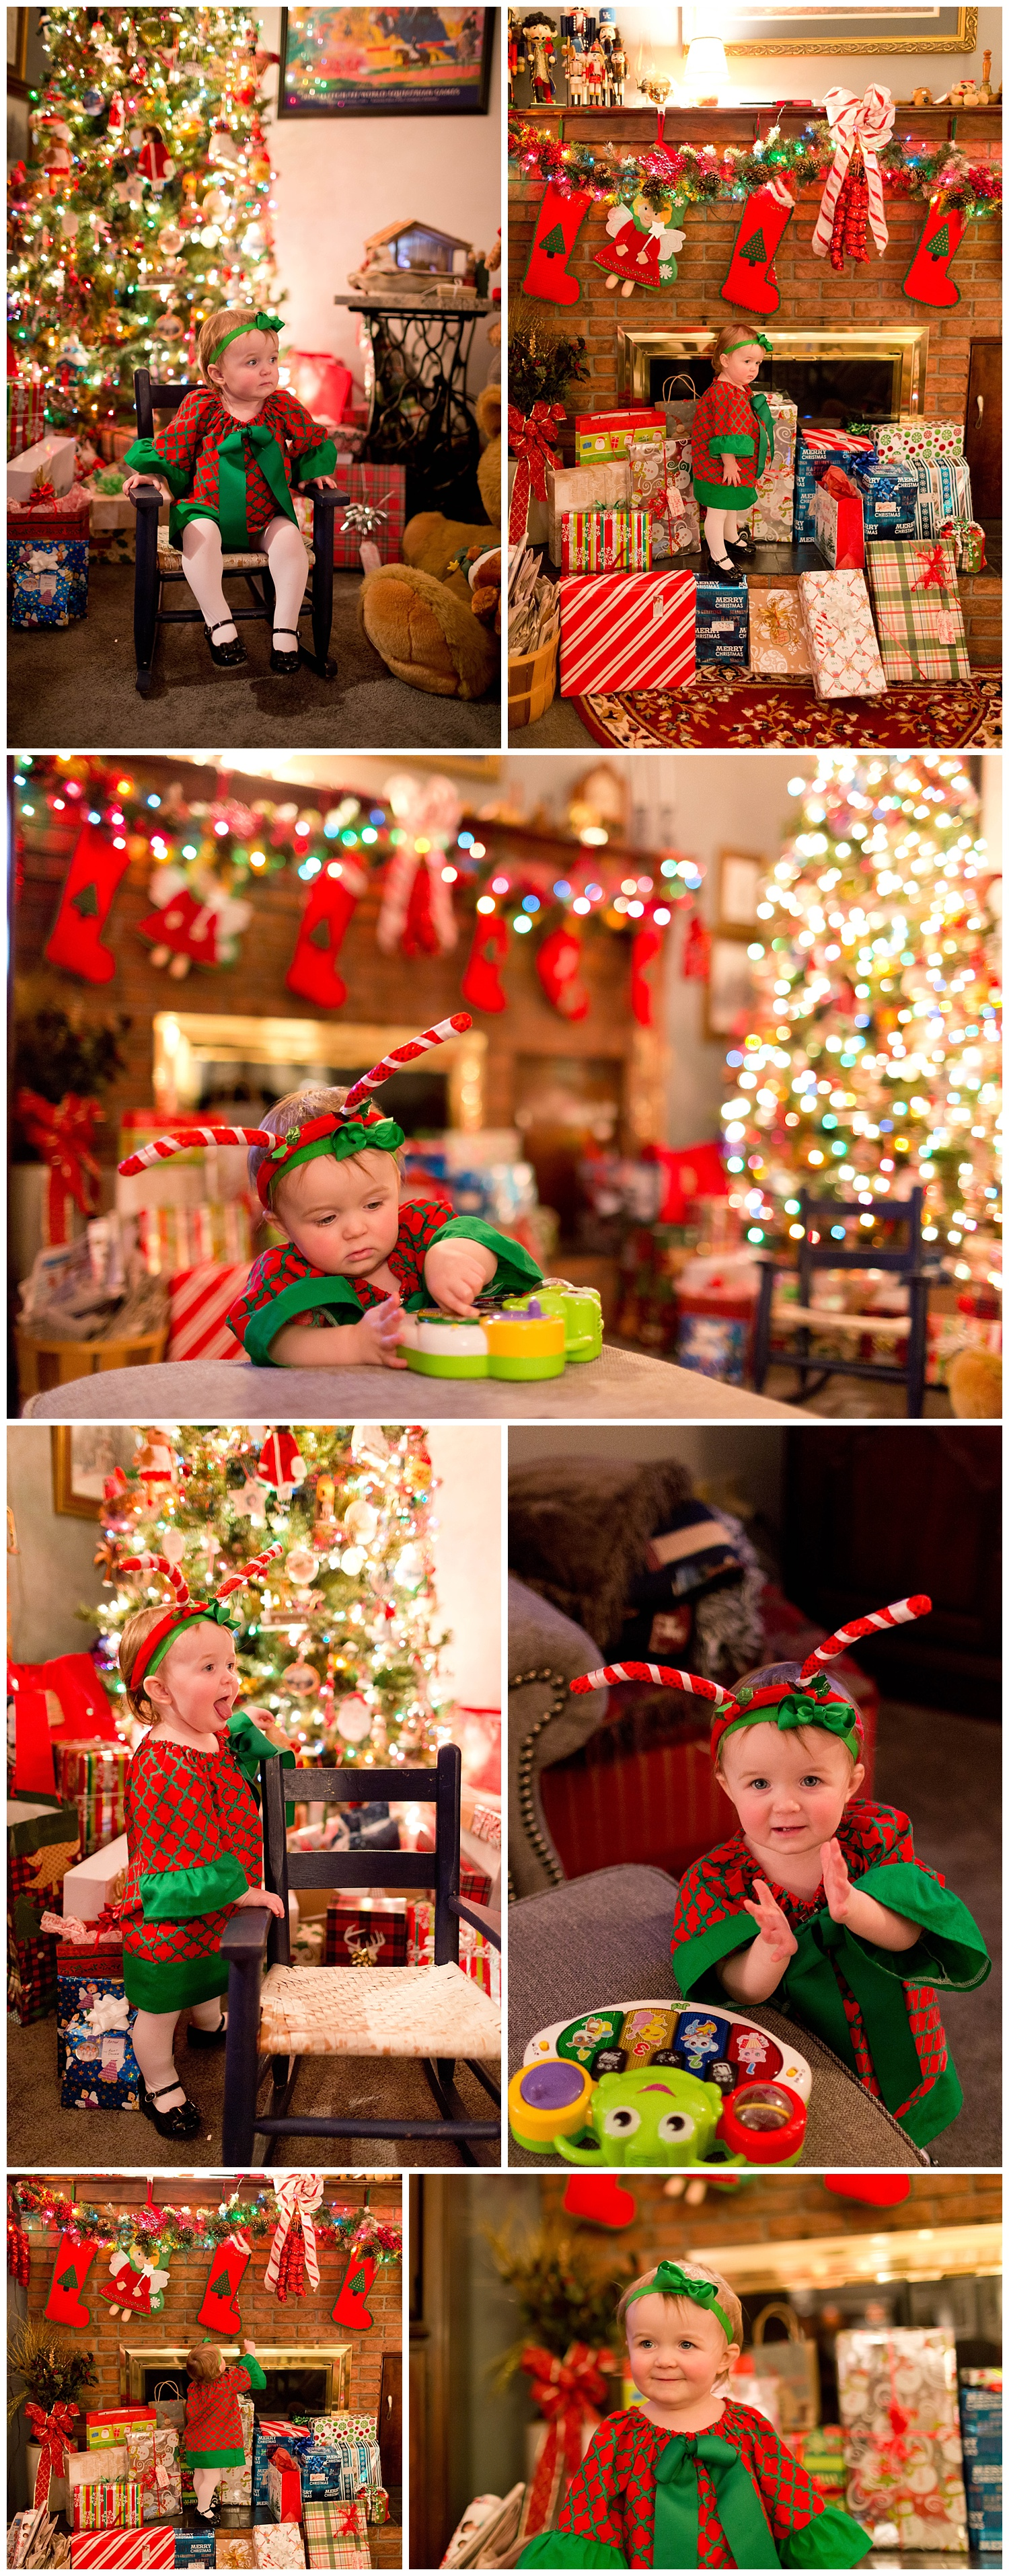 spunky baby girl on Christmas Eve with silly antlers